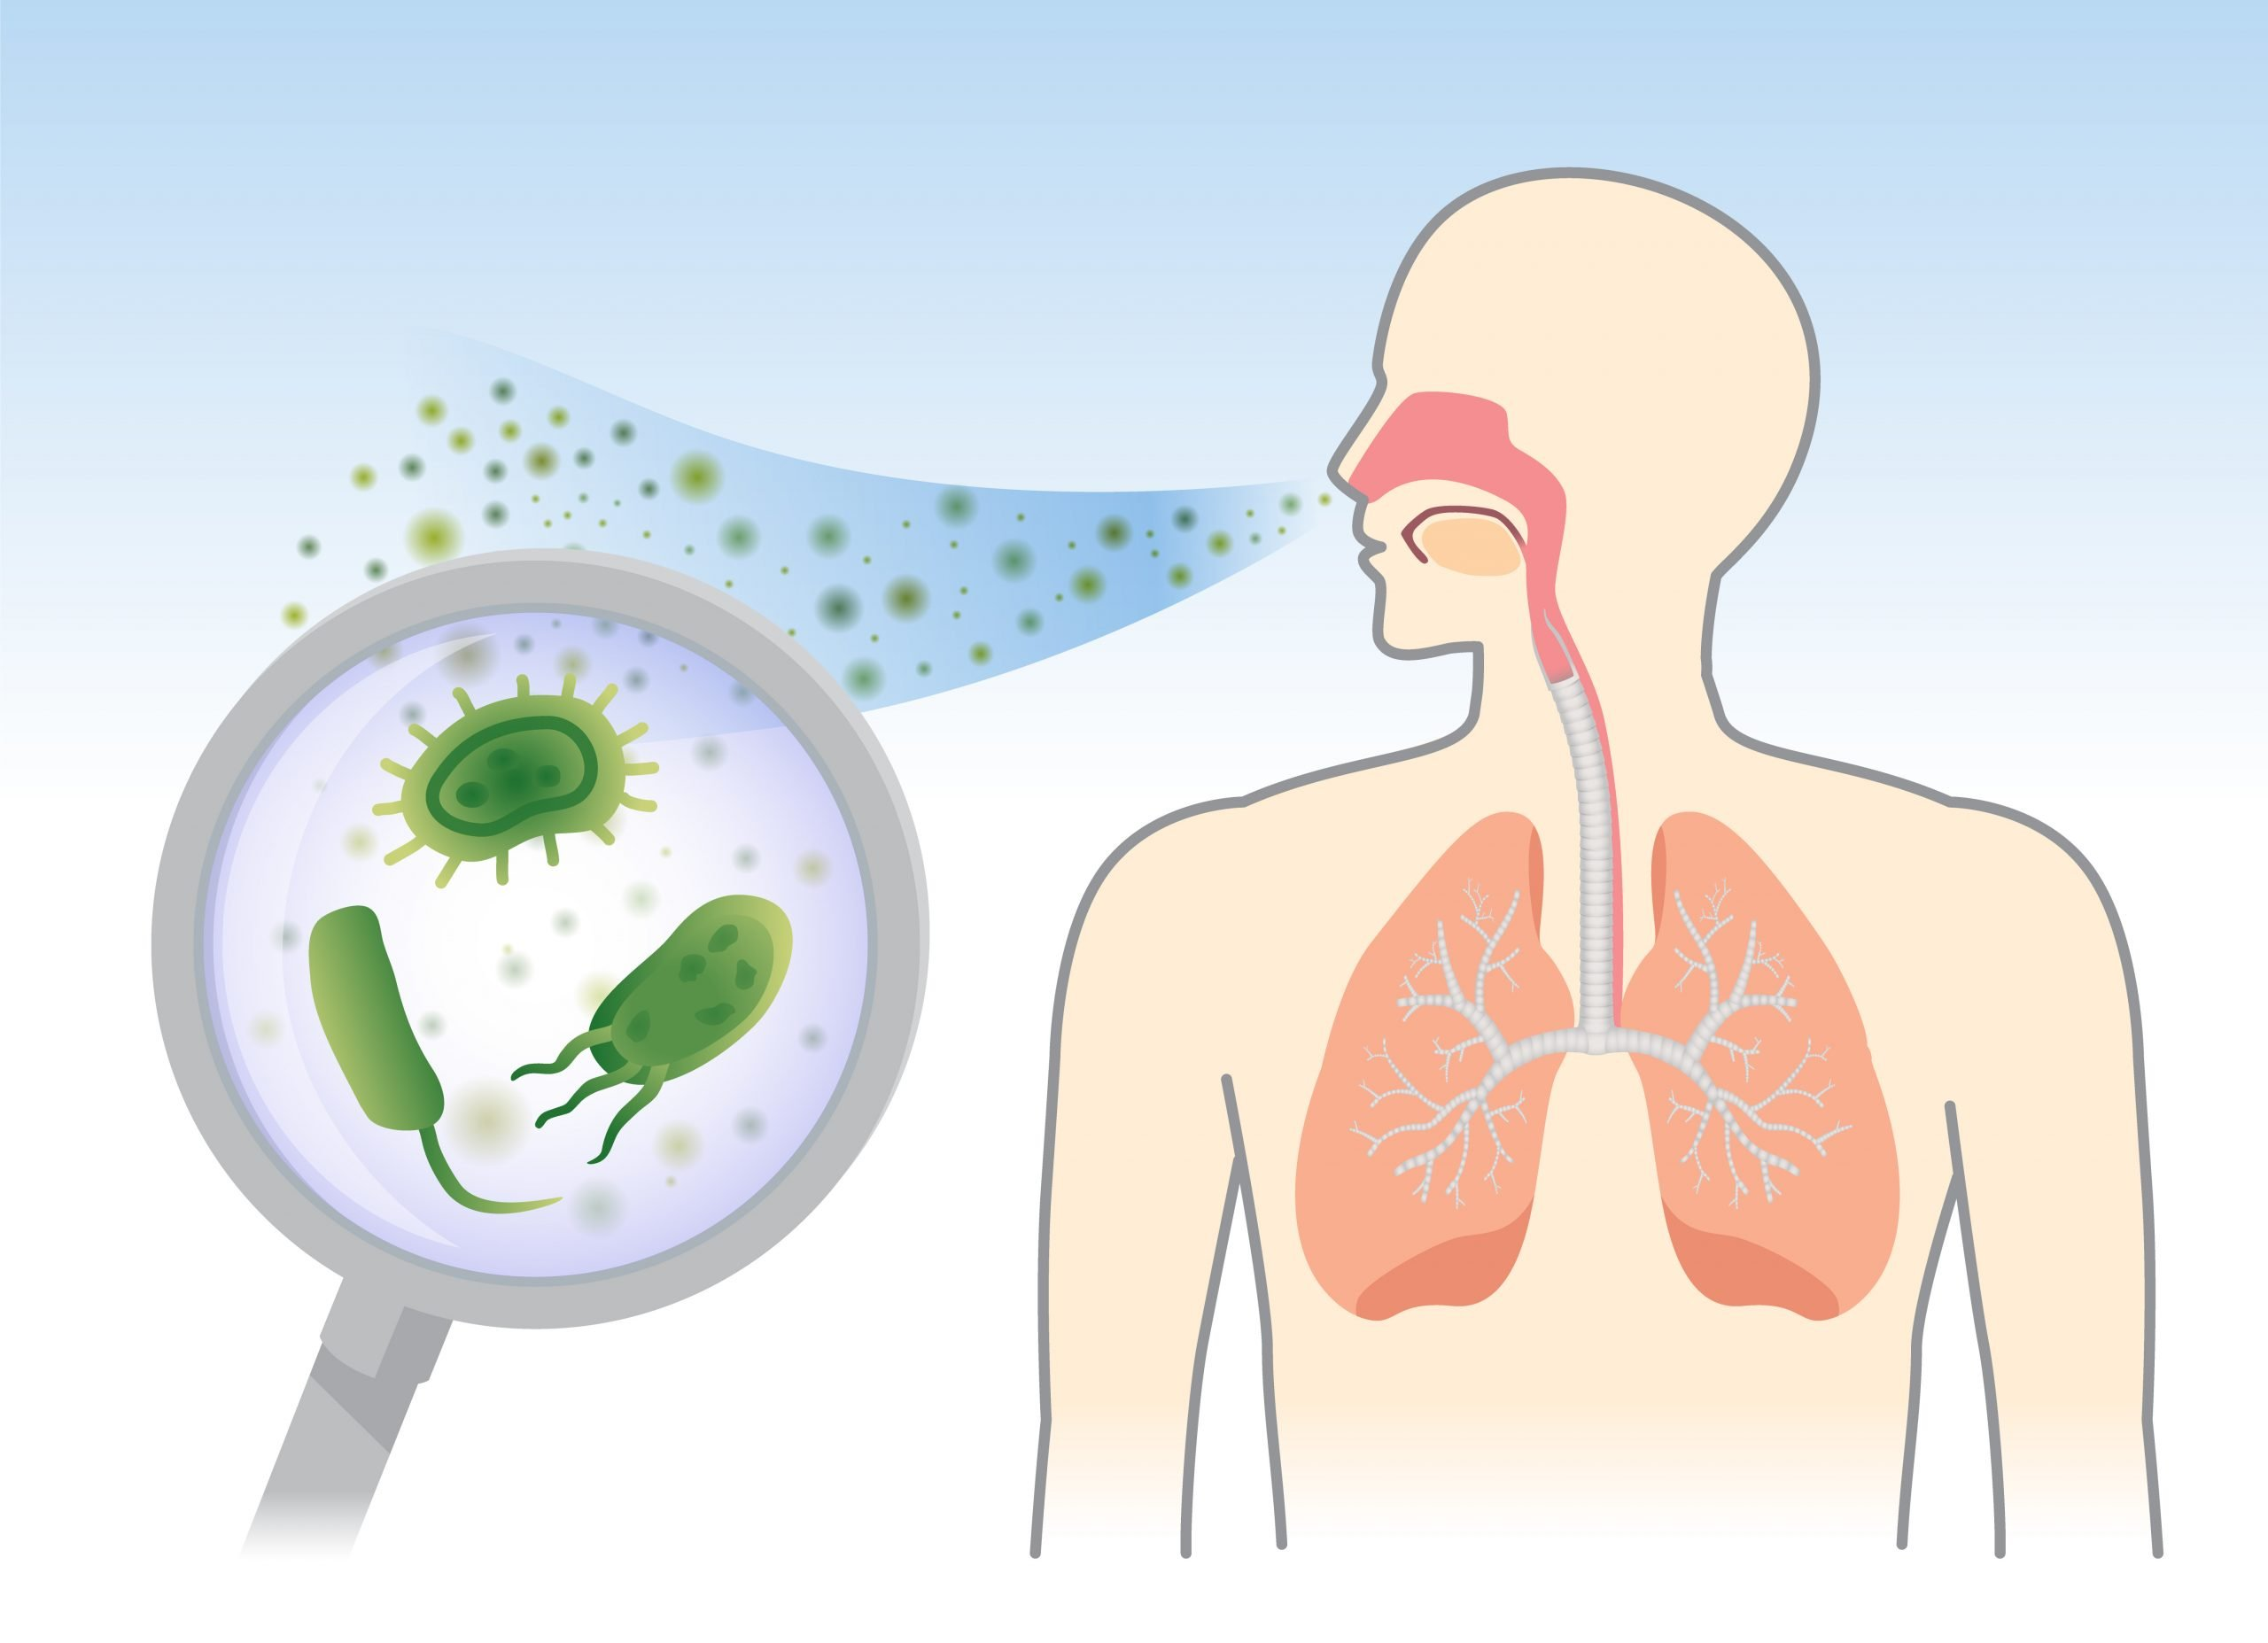 88931443 - looking bacteria and fungi into respiratory of human from breathe with magnifying glass. illustration about air pollution.